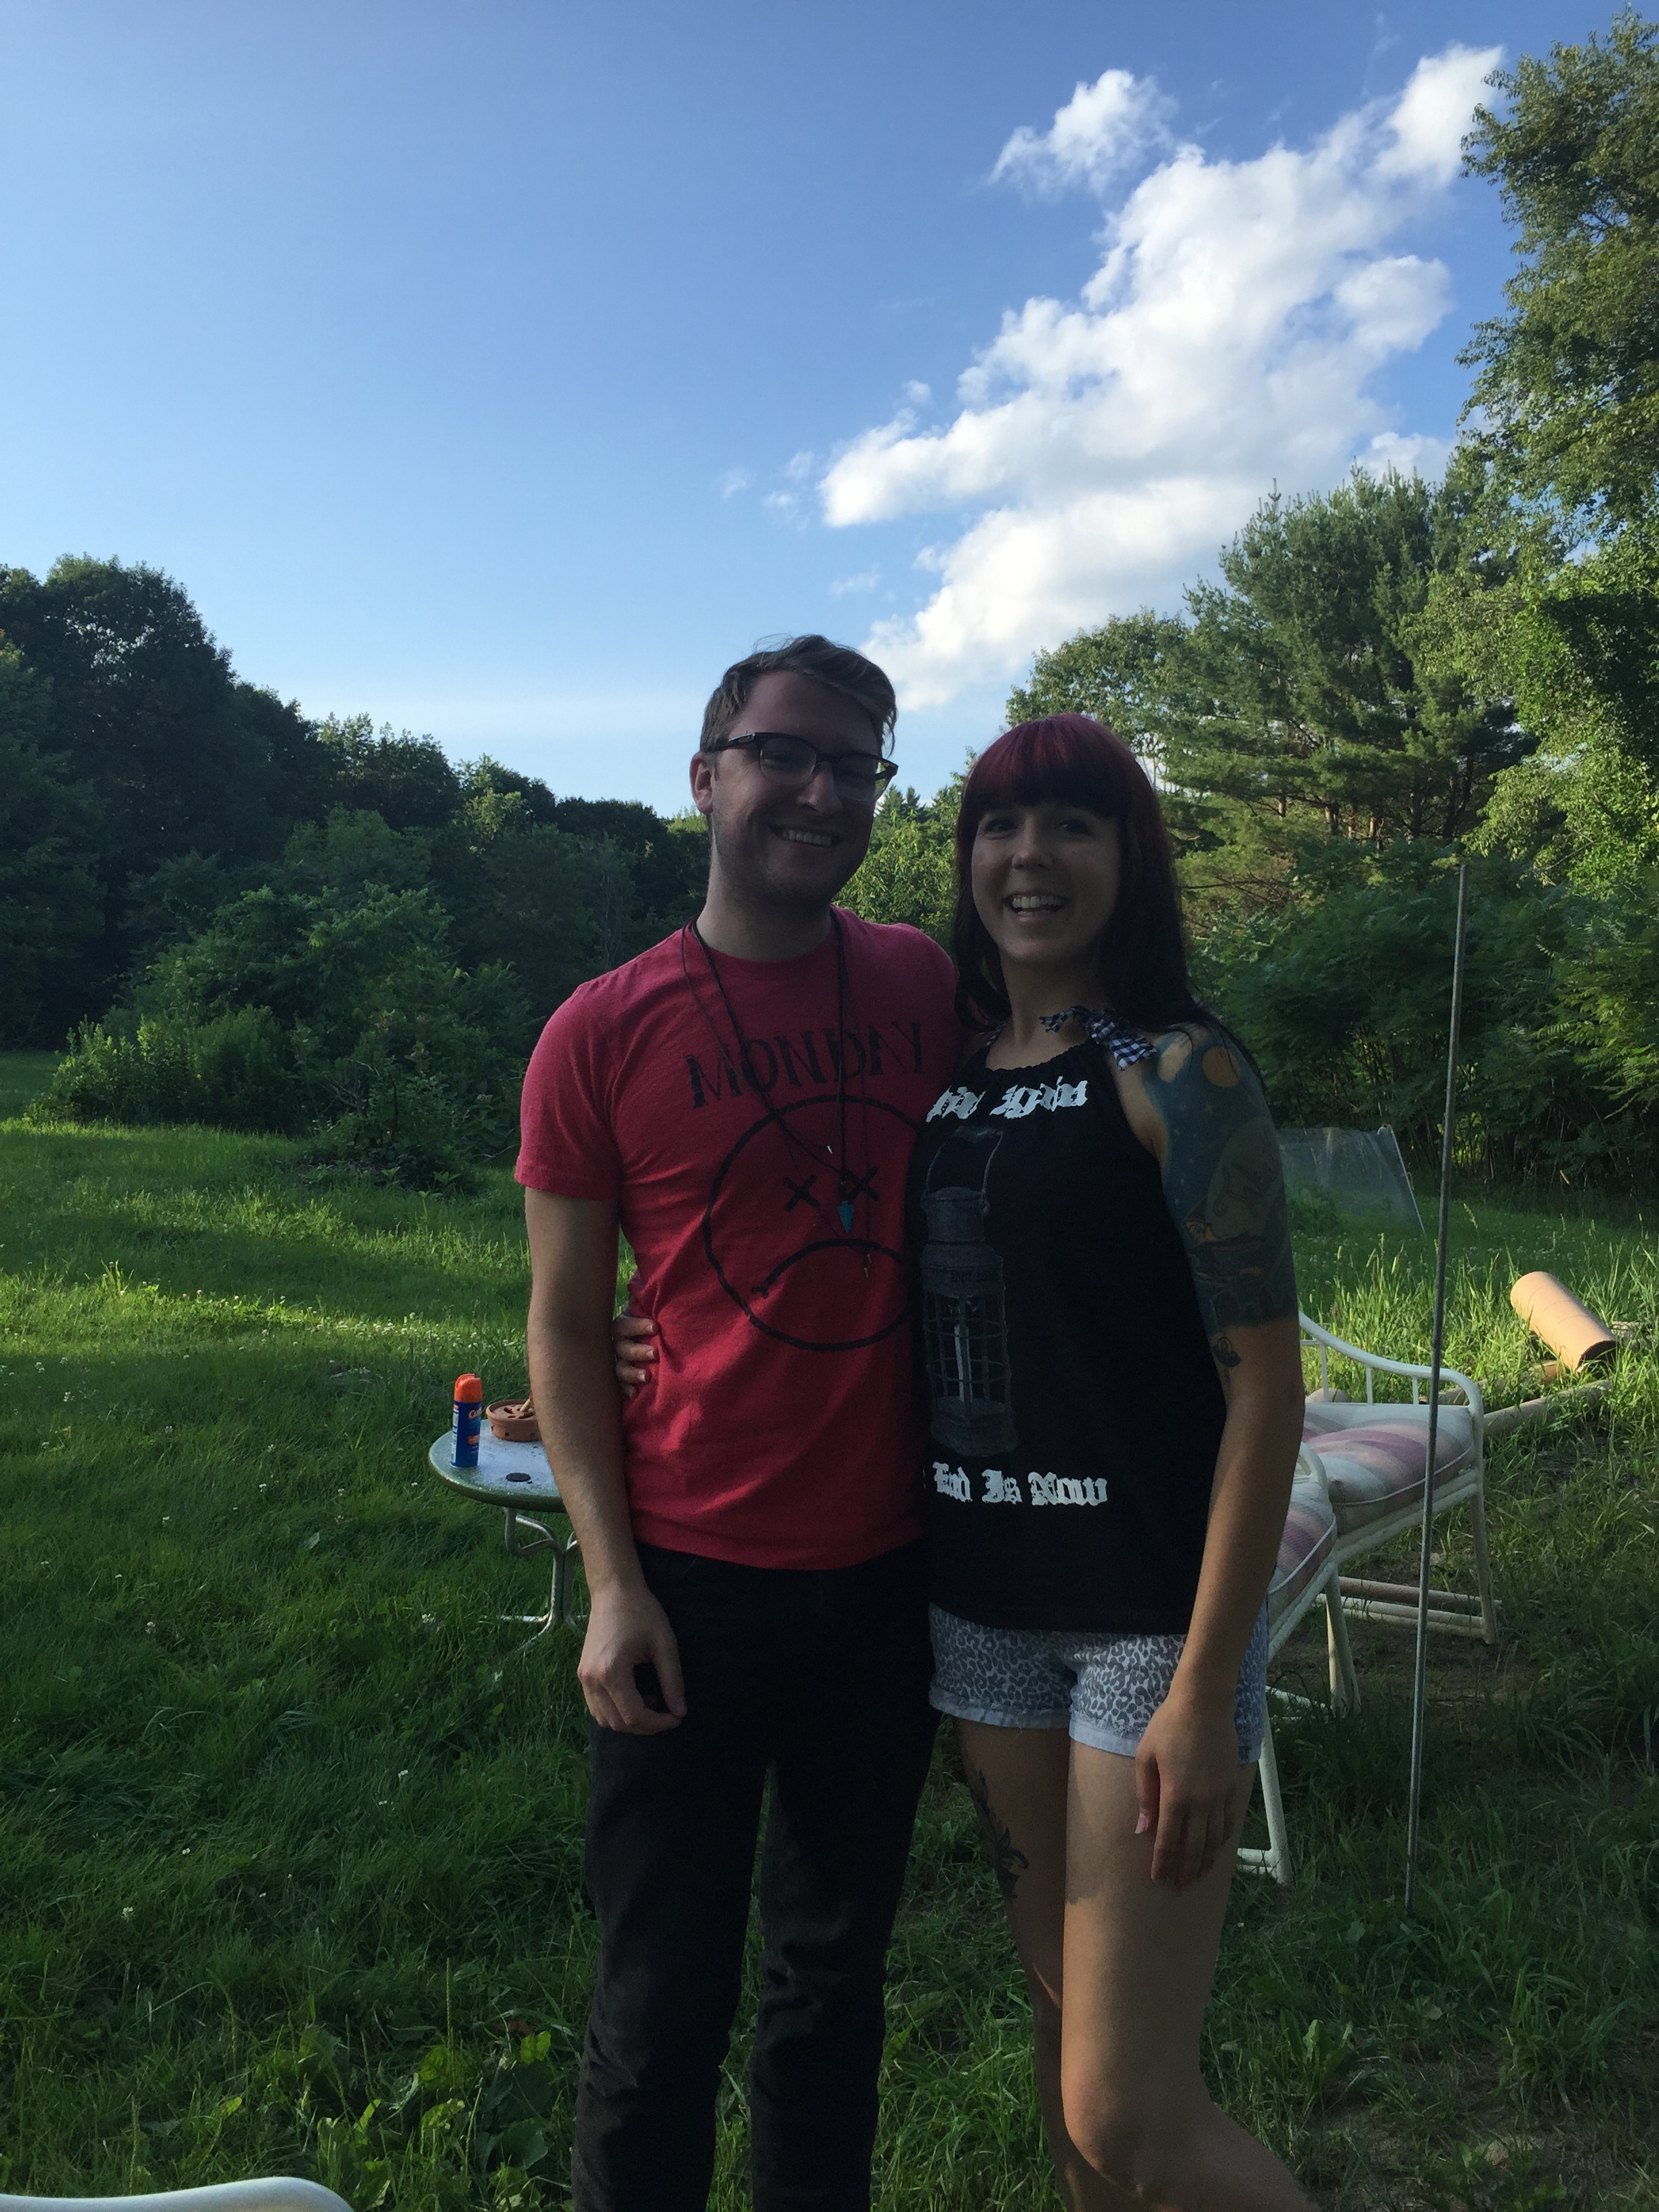 Visiting my good friend Sam for a BBQ andbonfire last week on our day off.